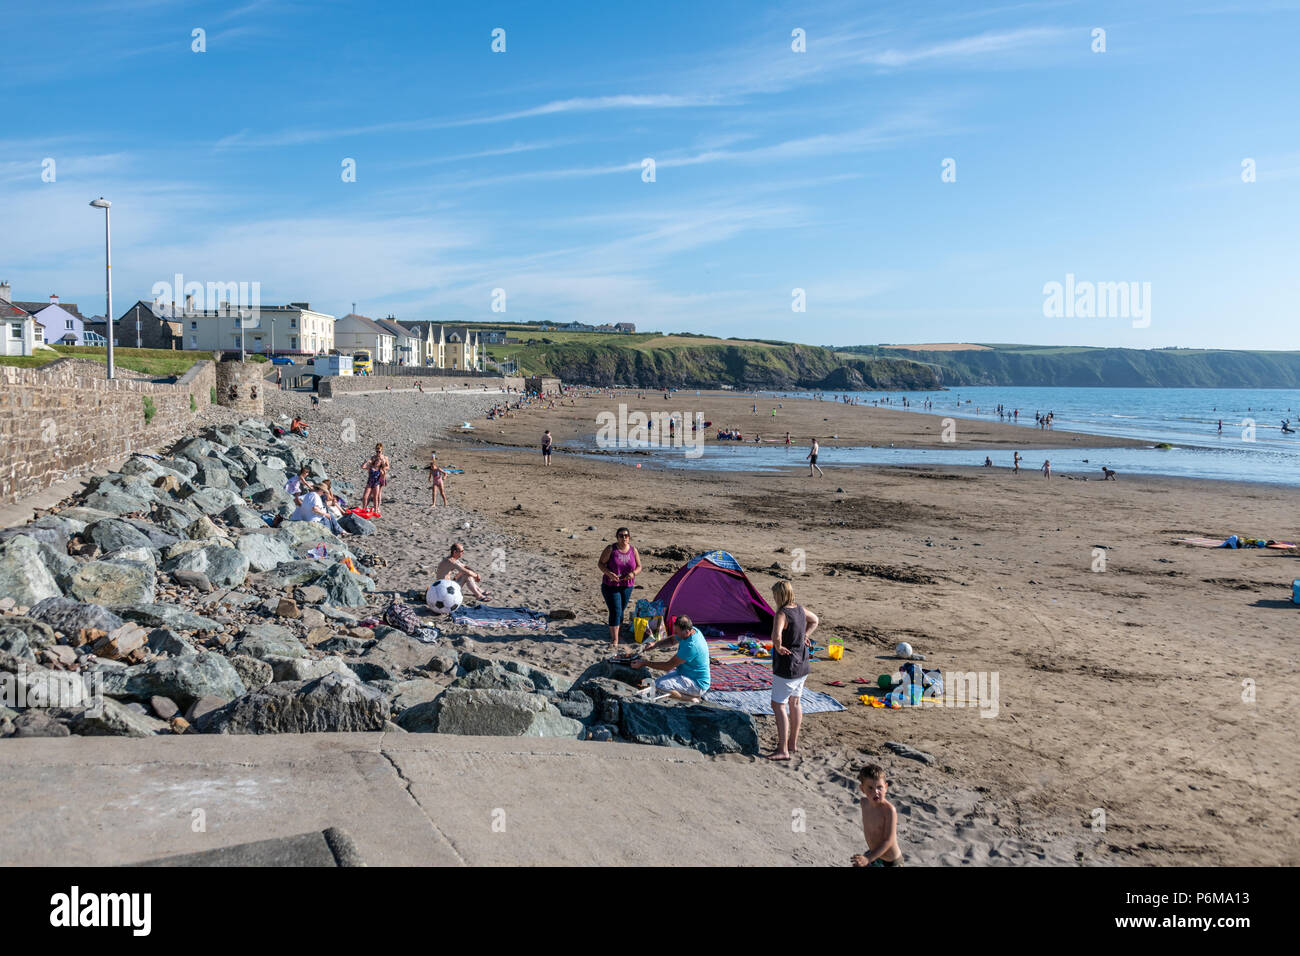 Broad Haven, Wales, UK. 30th June 2018. People enjoy the last of the June heatwave on the beach at Broad Haven and Littlehaven in South Wales. Credit Thomas Faull / Alamy Live News Stock Photo